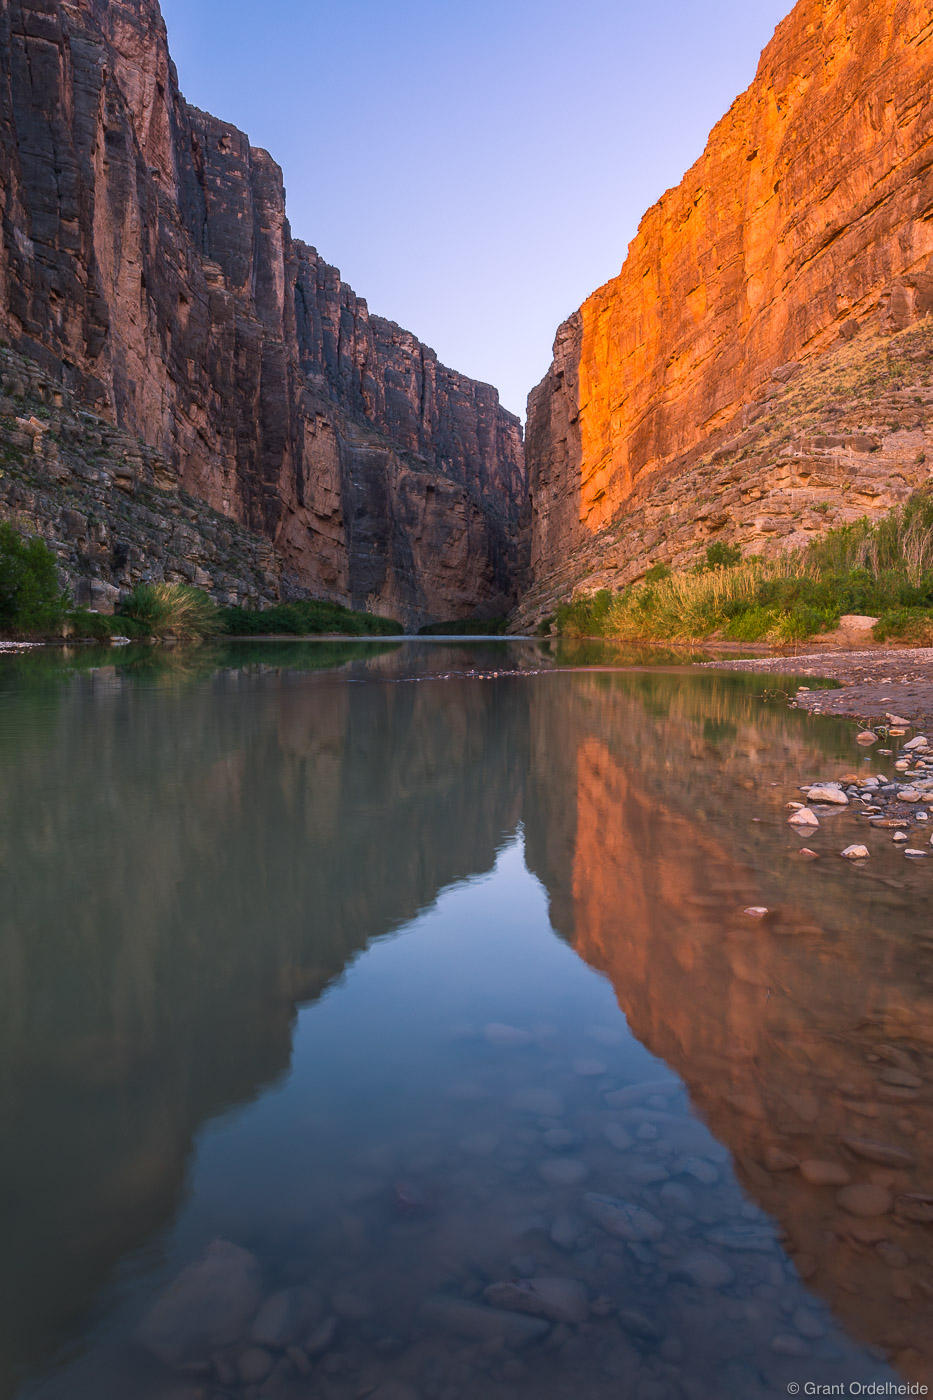 Sunrise over the Rio Grande river and the entrance to the Santa Elena Canyon in Big Bend National Park. This river and canyon...